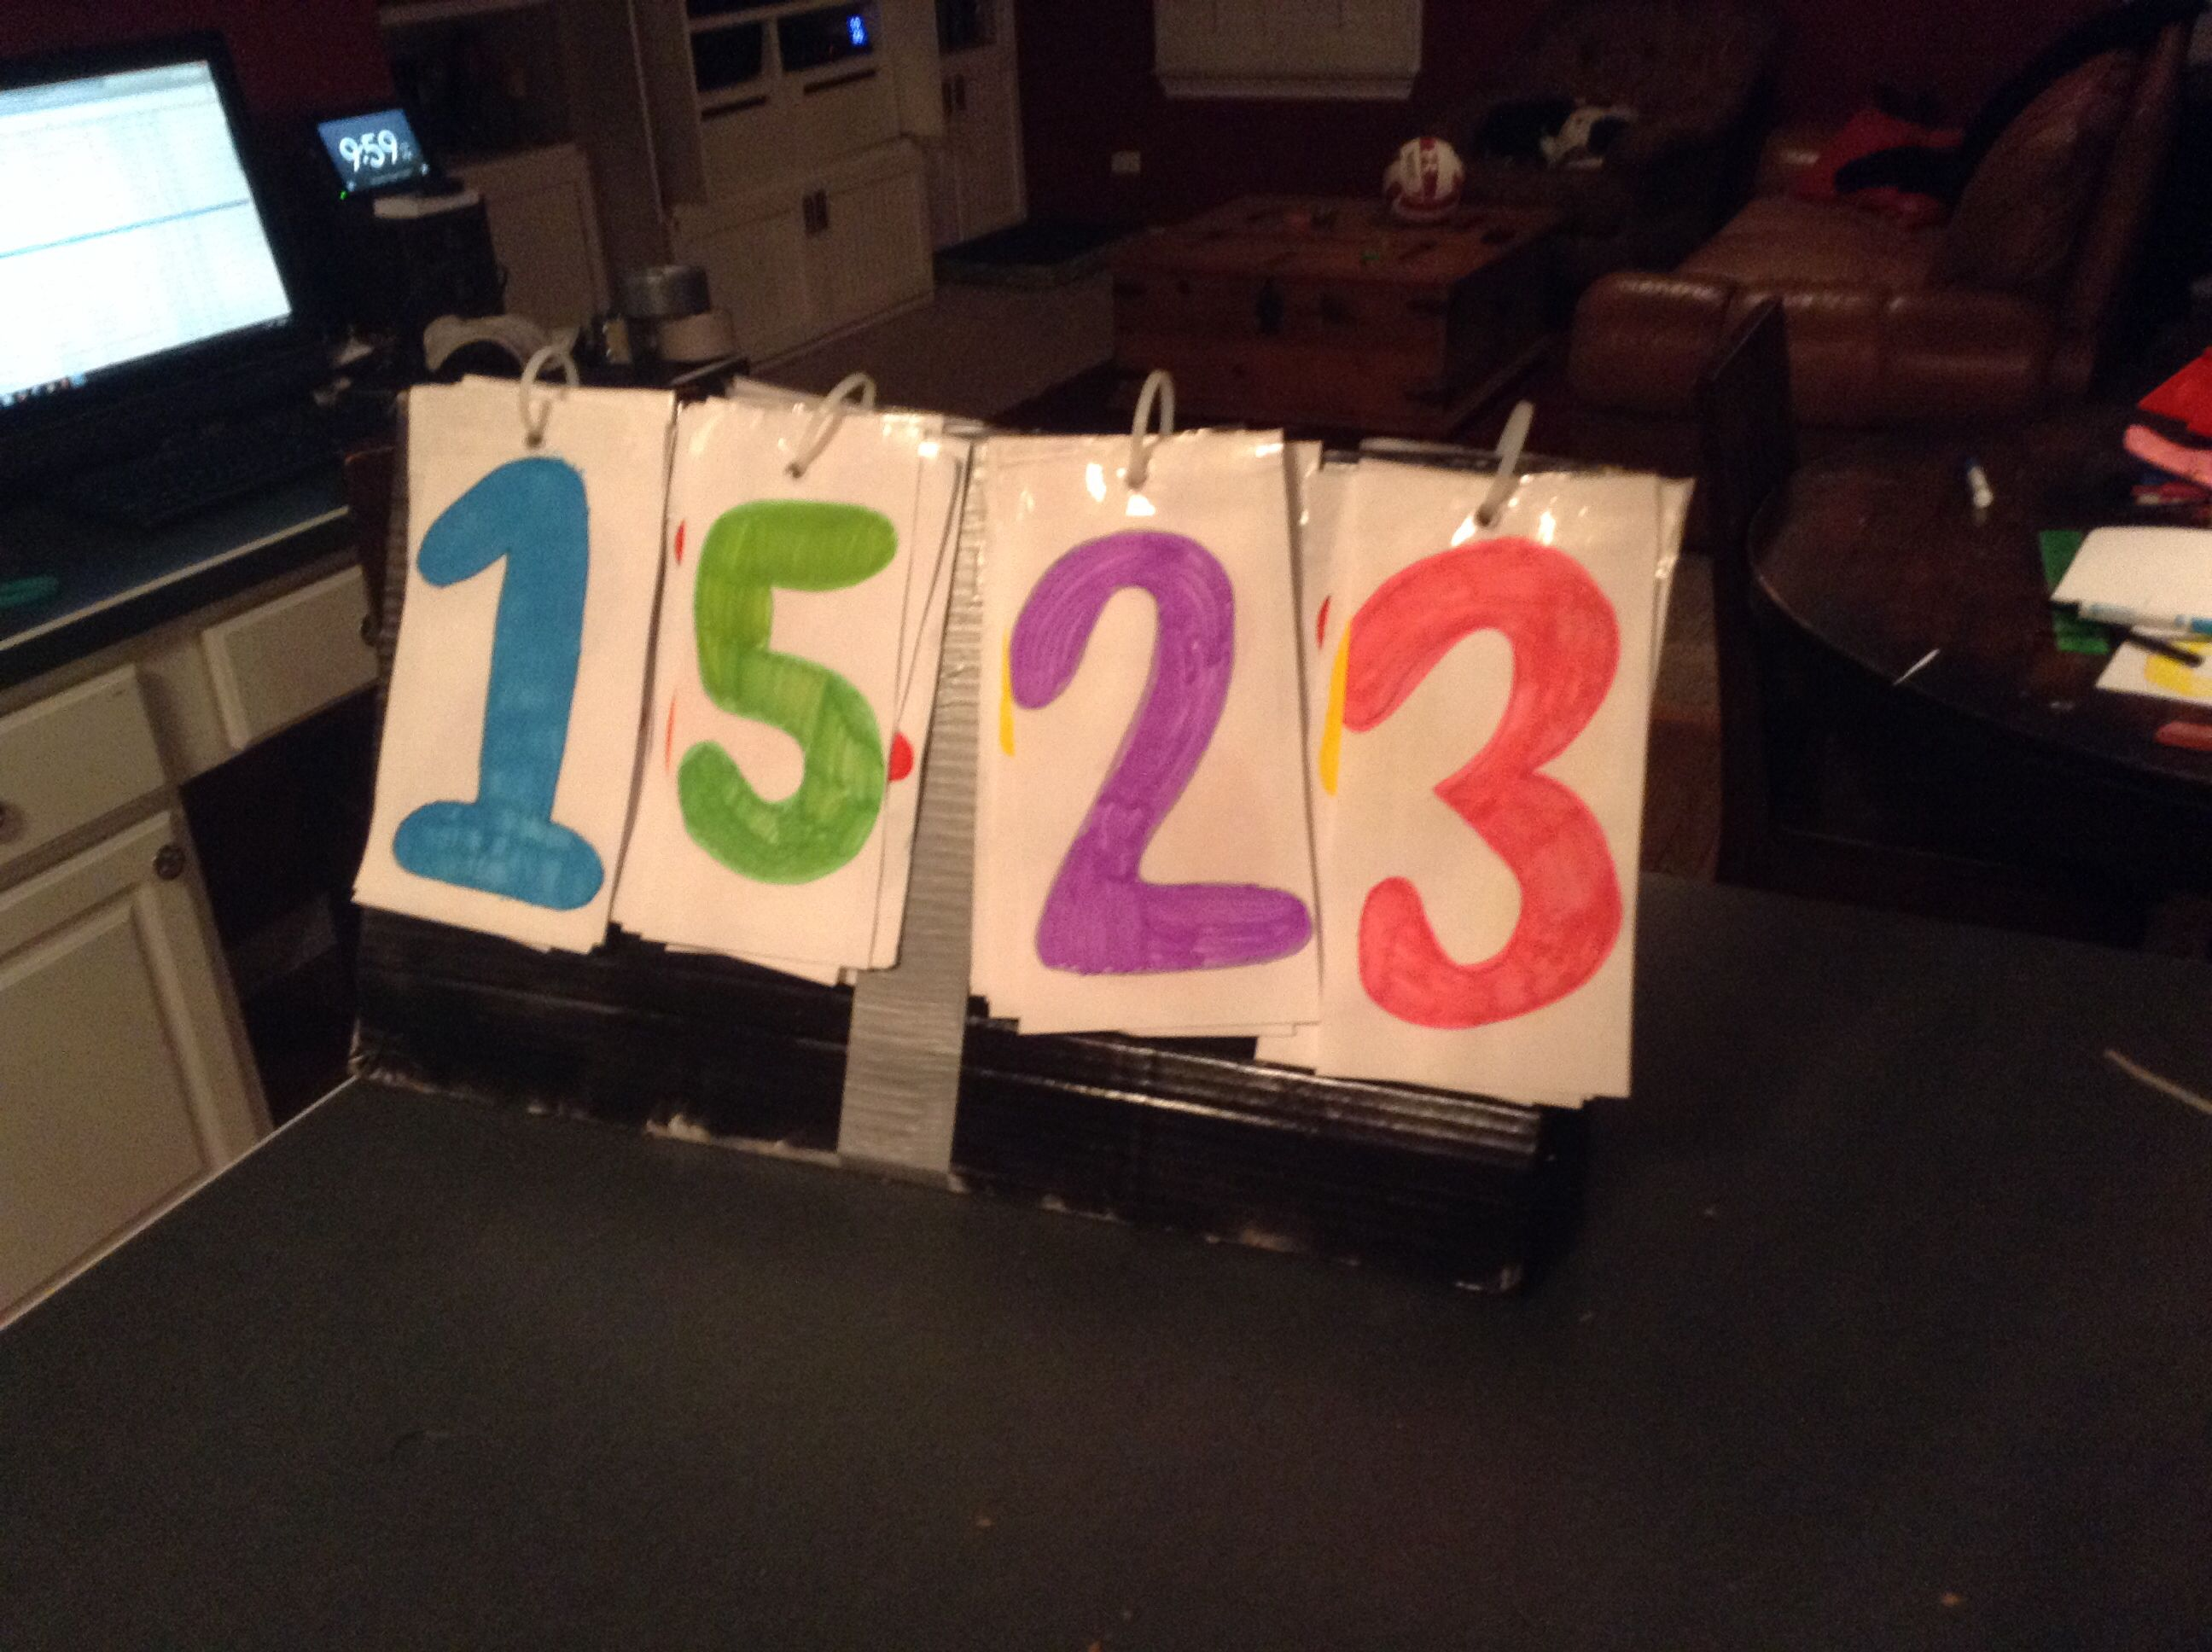 This Is A Homemade Volleyball Scoreboard Things You Will Need Cardboard Triangle Box Zipties Tape Markers Paper Easy Fun Diy Fun Diys Marker Paper Diy